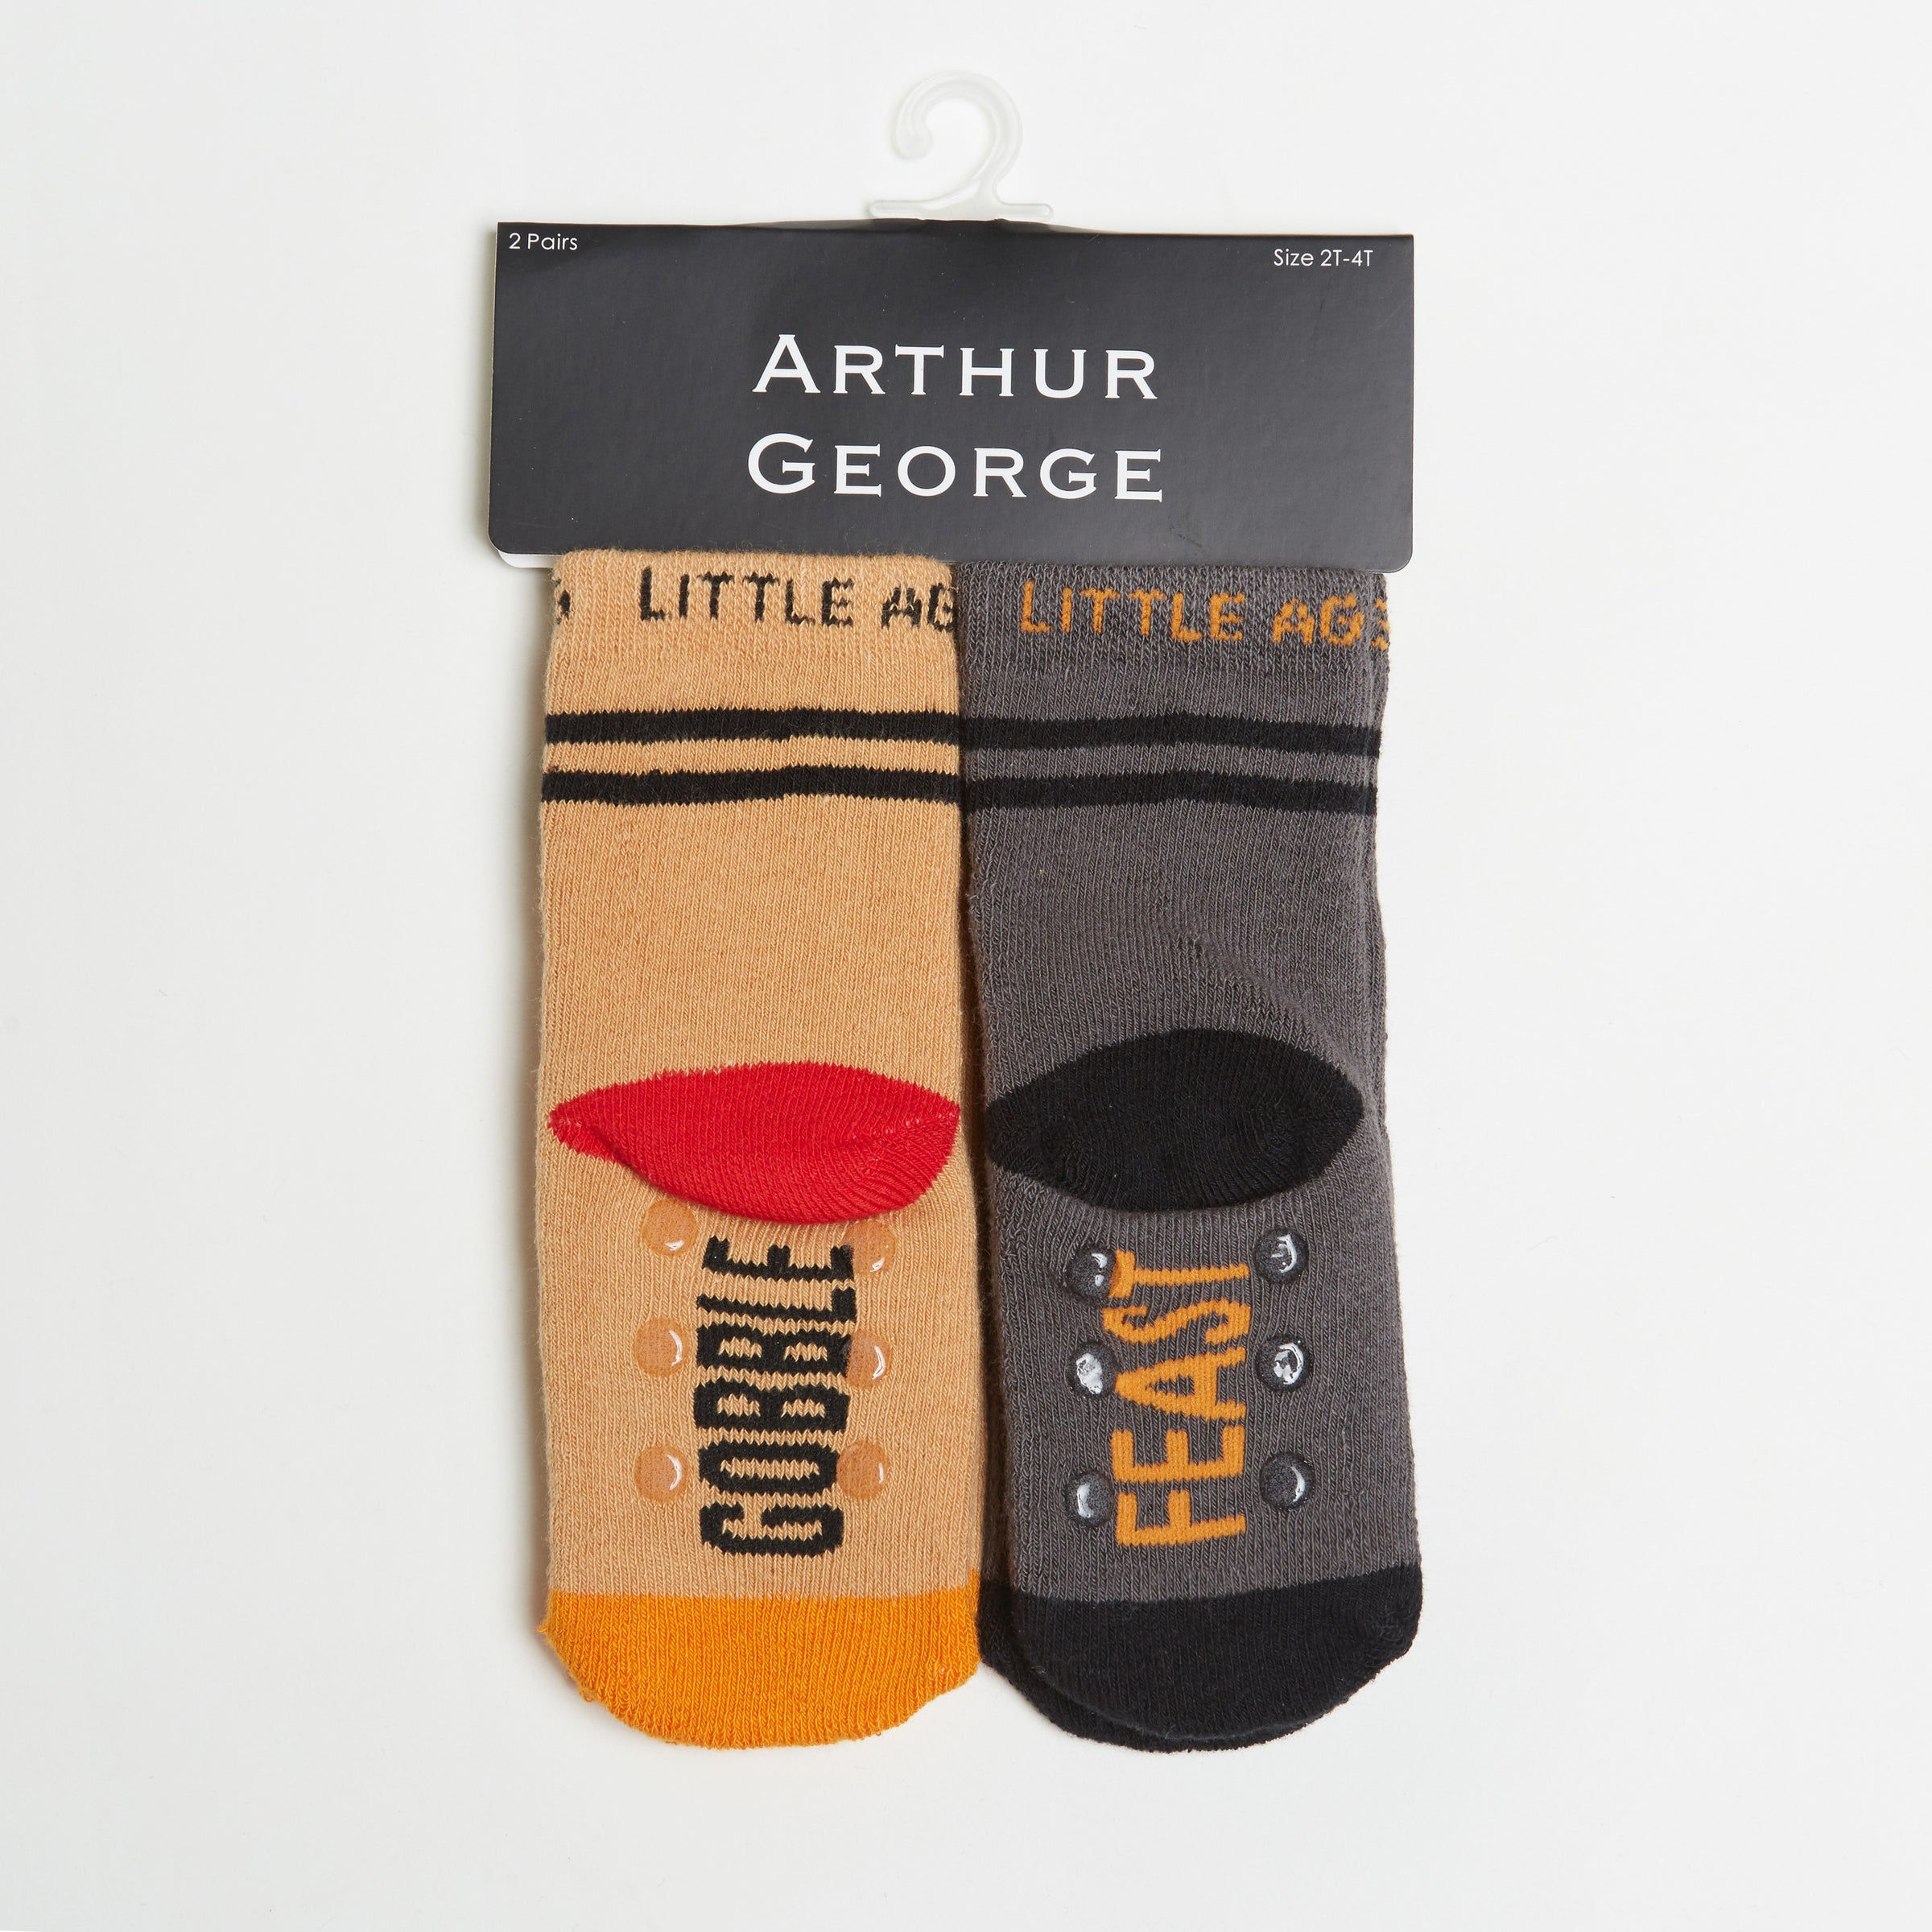 Gobble Gobble/ Feast Mode socks two pack bottom view side by side